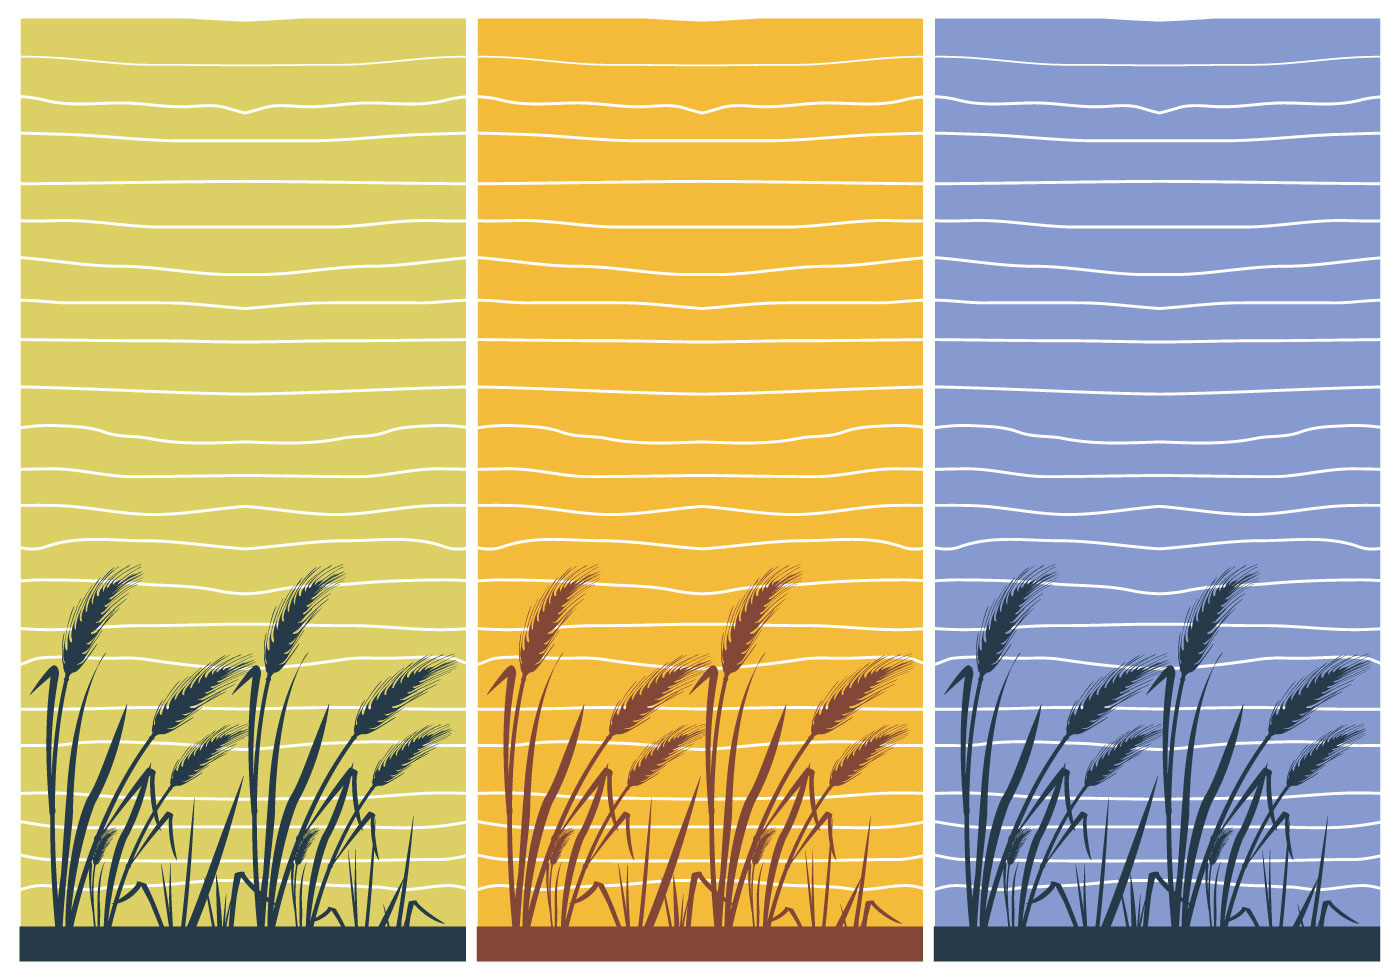 Hd Wallpaper Texture Fall Harvest Rice Wallpaper Illustration Of The House Vector Download